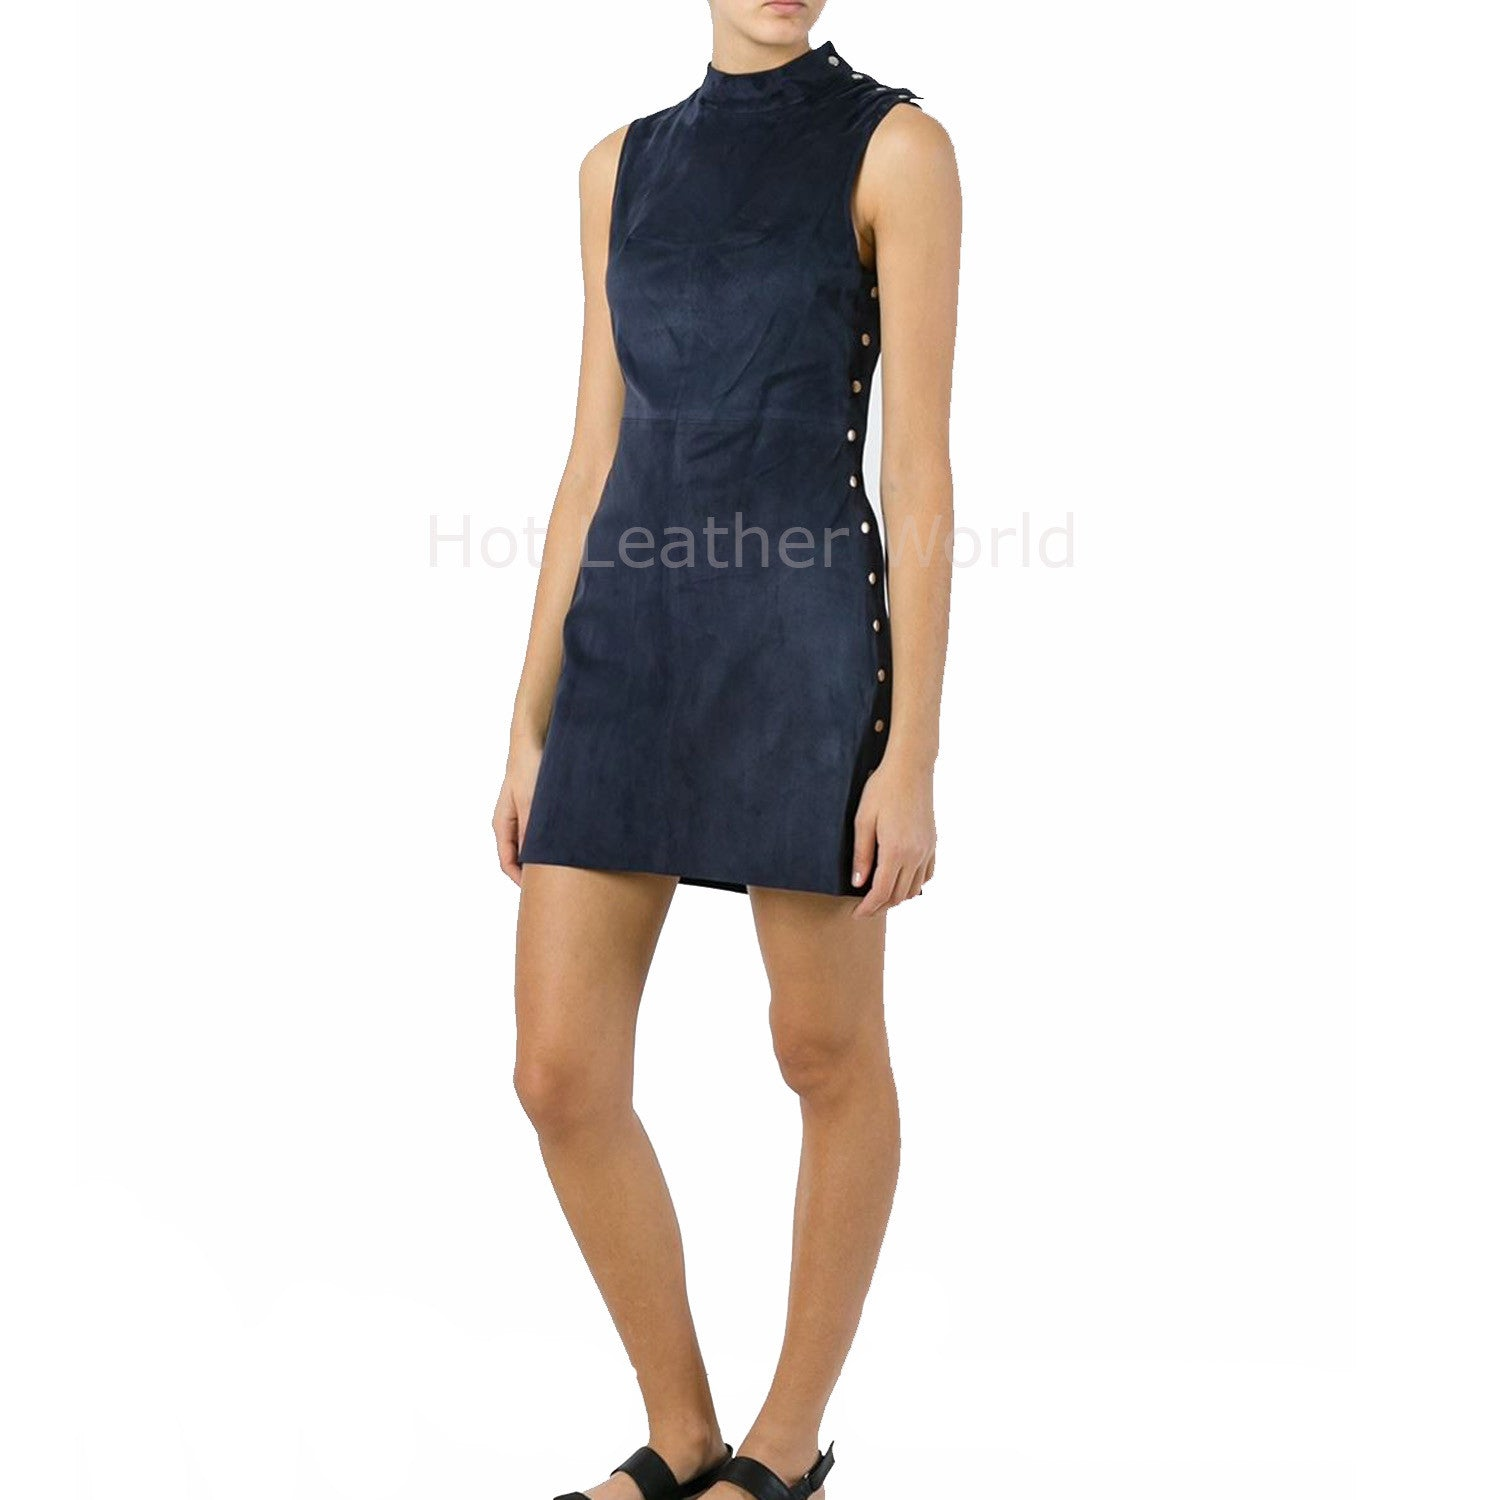 High Neck Women Leather Suede Dress -  HOTLEATHERWORLD